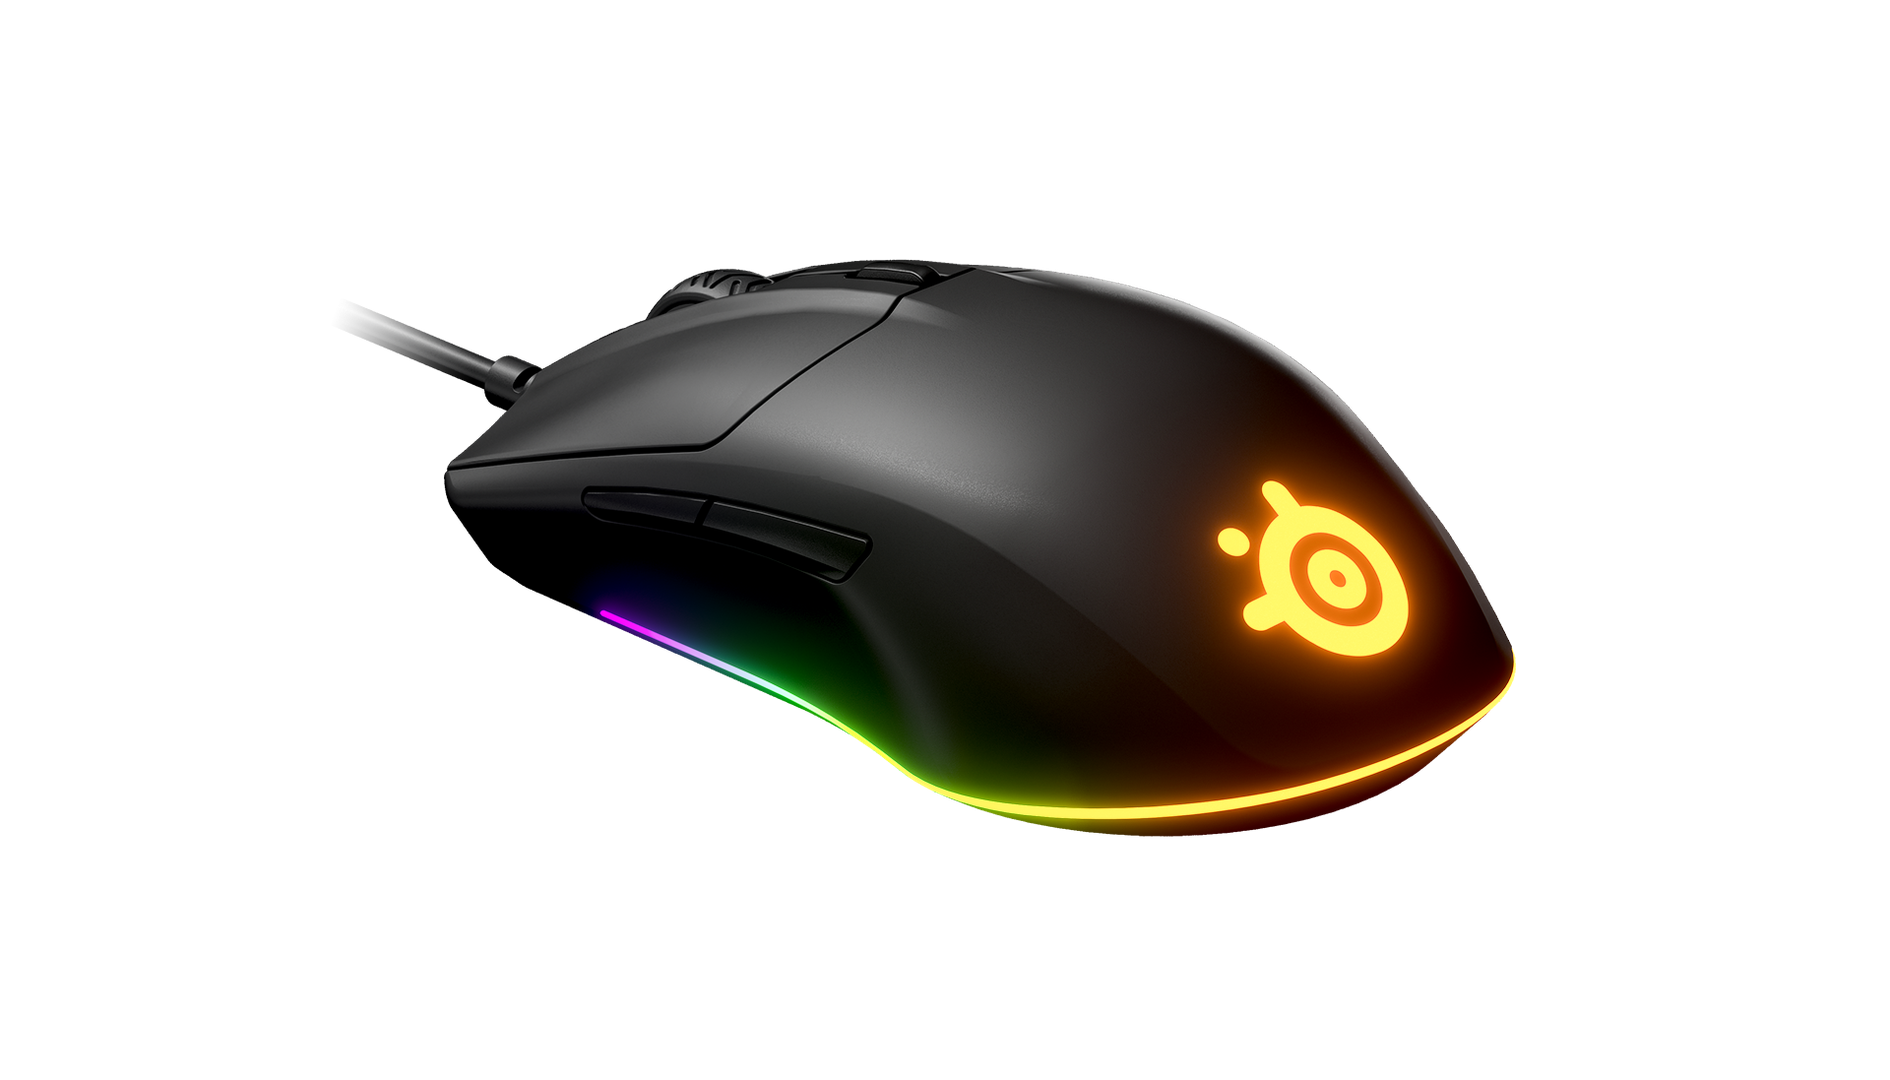 An up-close look at the Rival 3, showing off a bit of its Prism lighting.